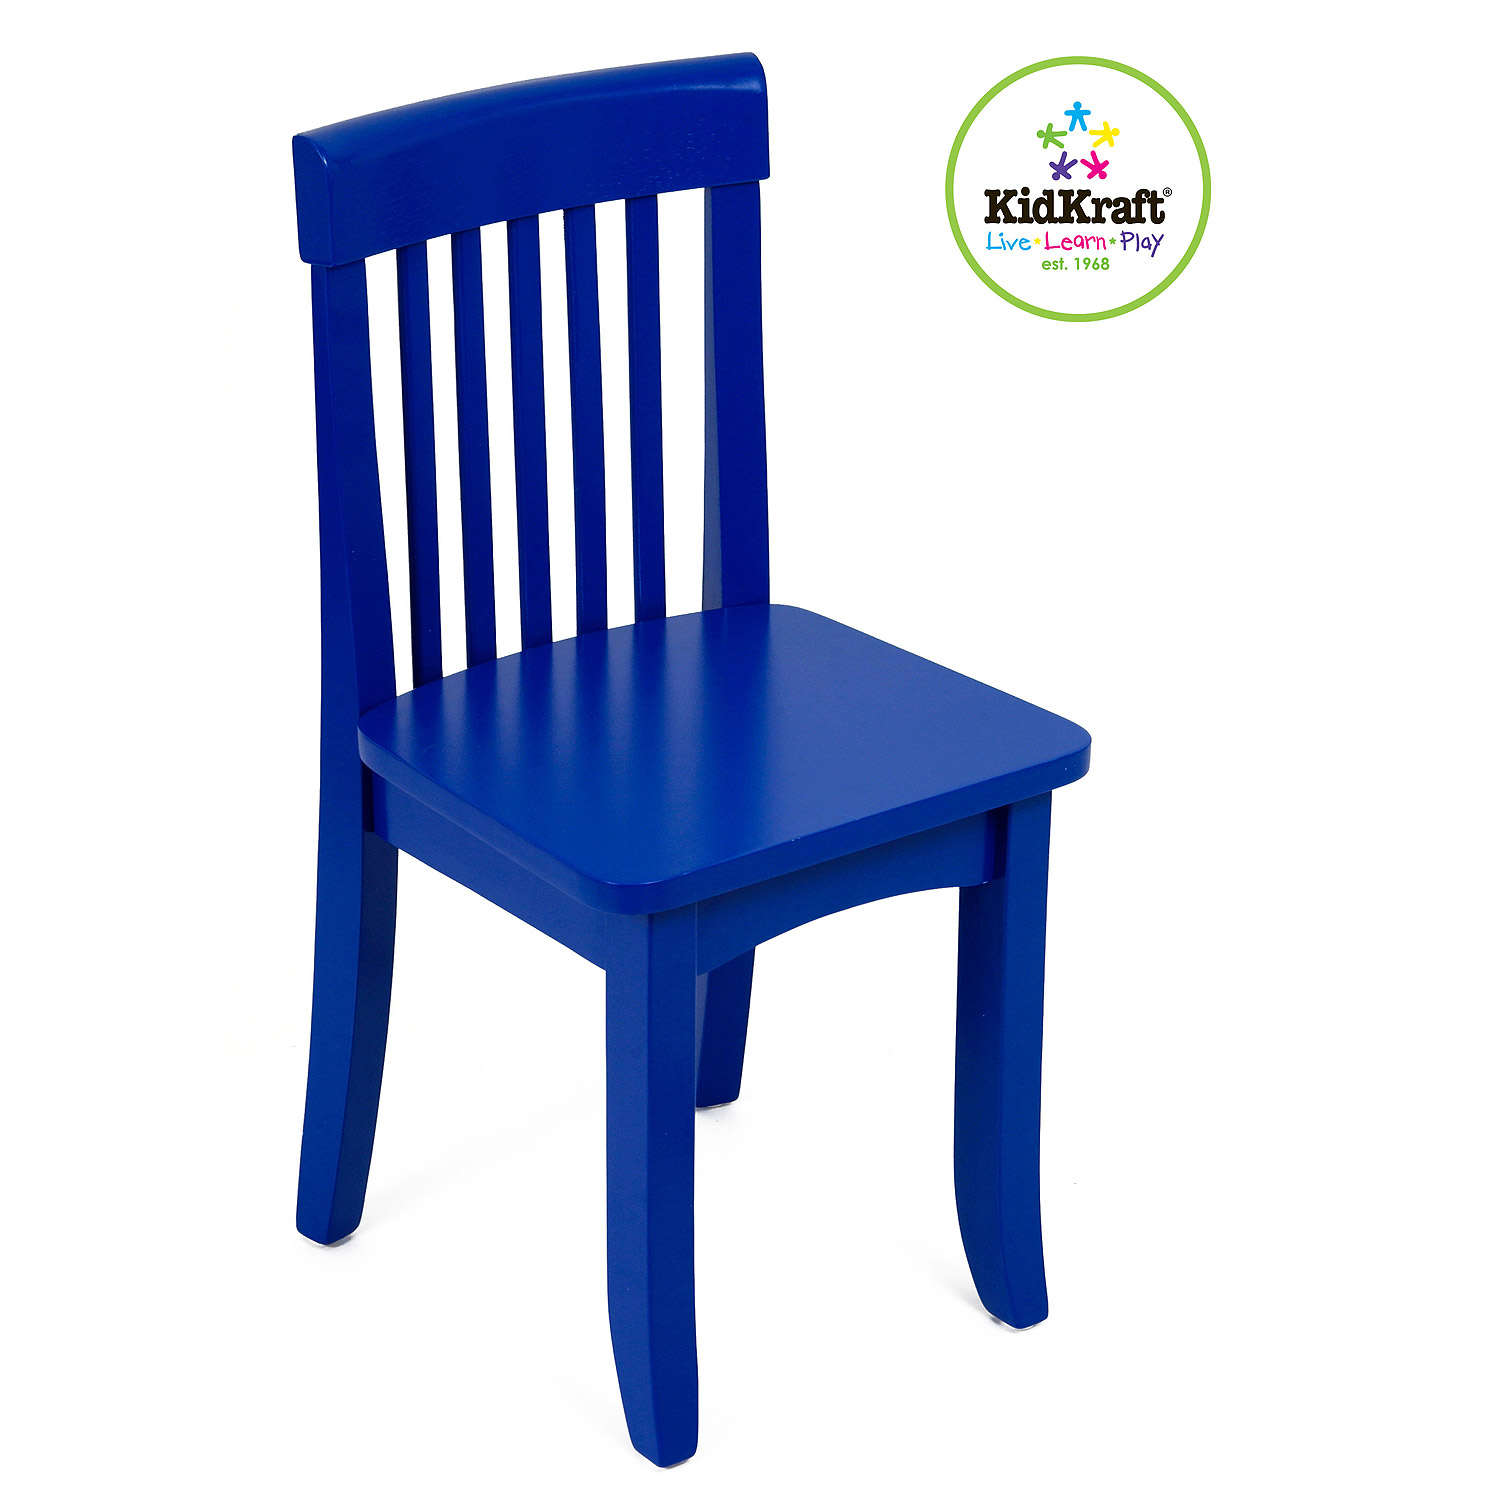 Avalon Blue Chair #P5zA02.